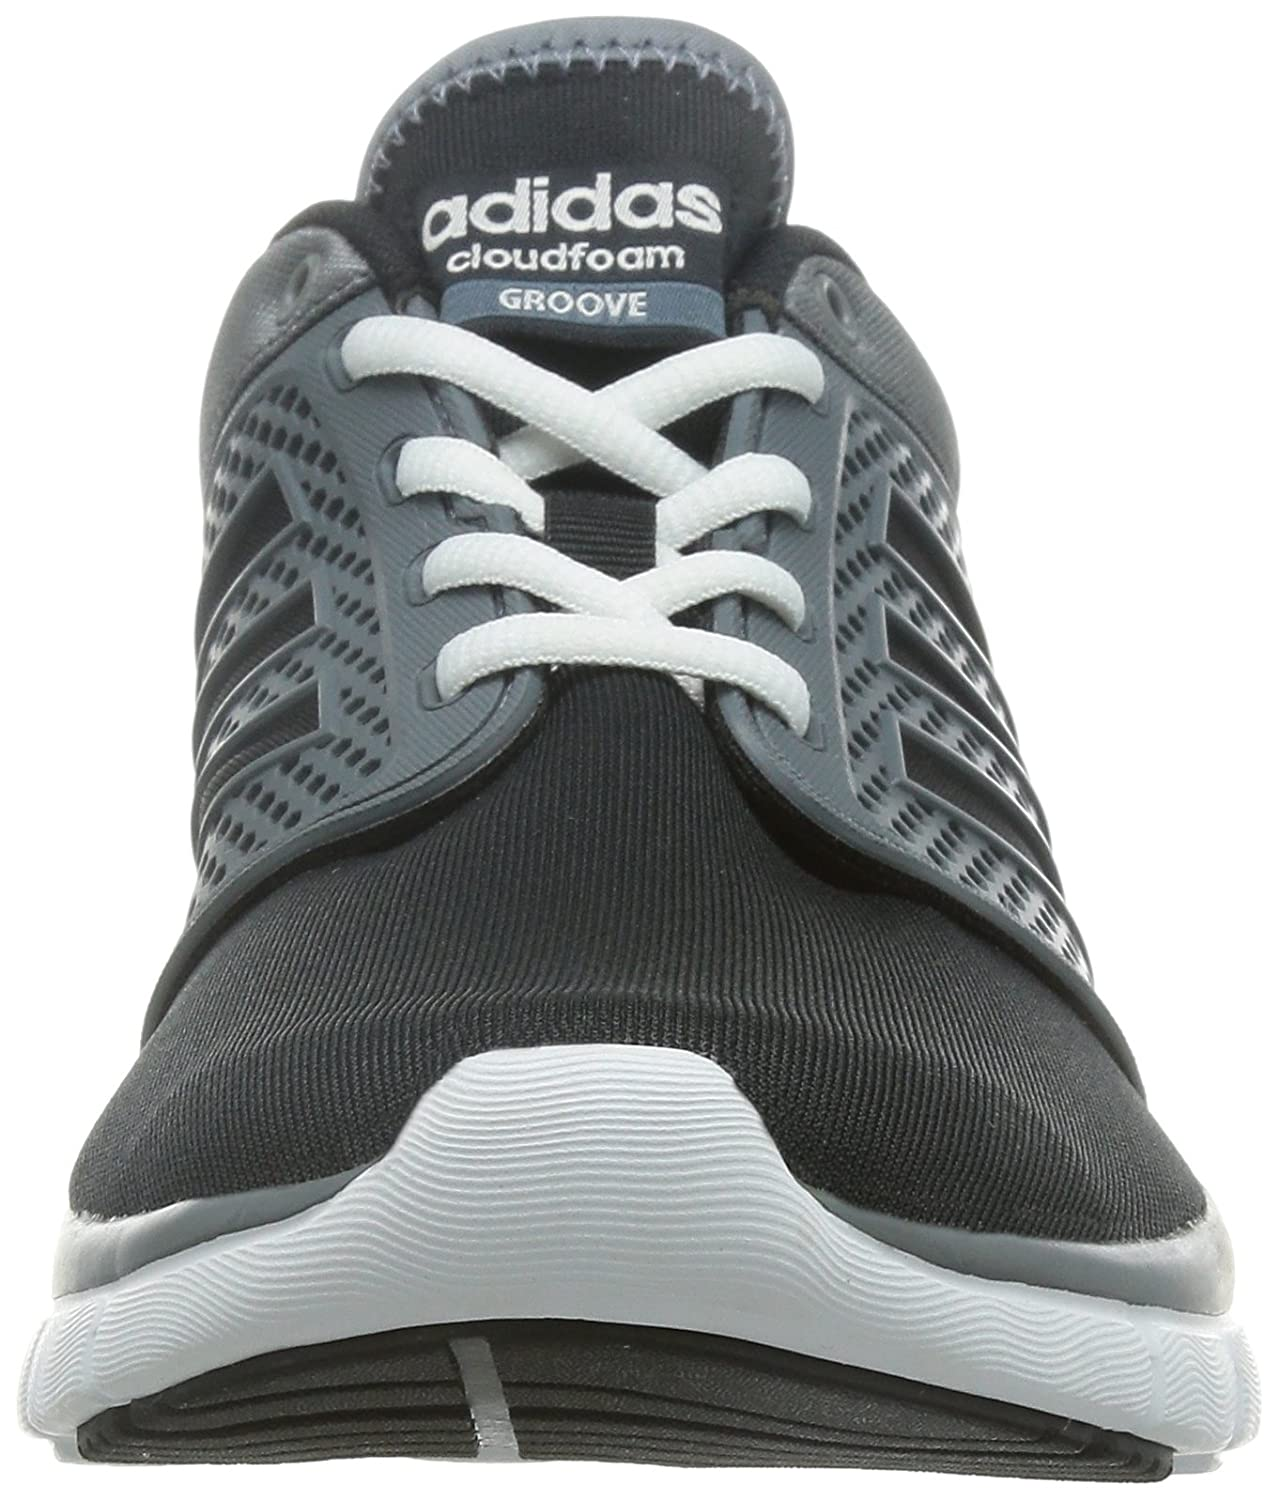 adidas Neo Cloudfoam Groove Mens Running Sneakers/Shoes Road ...